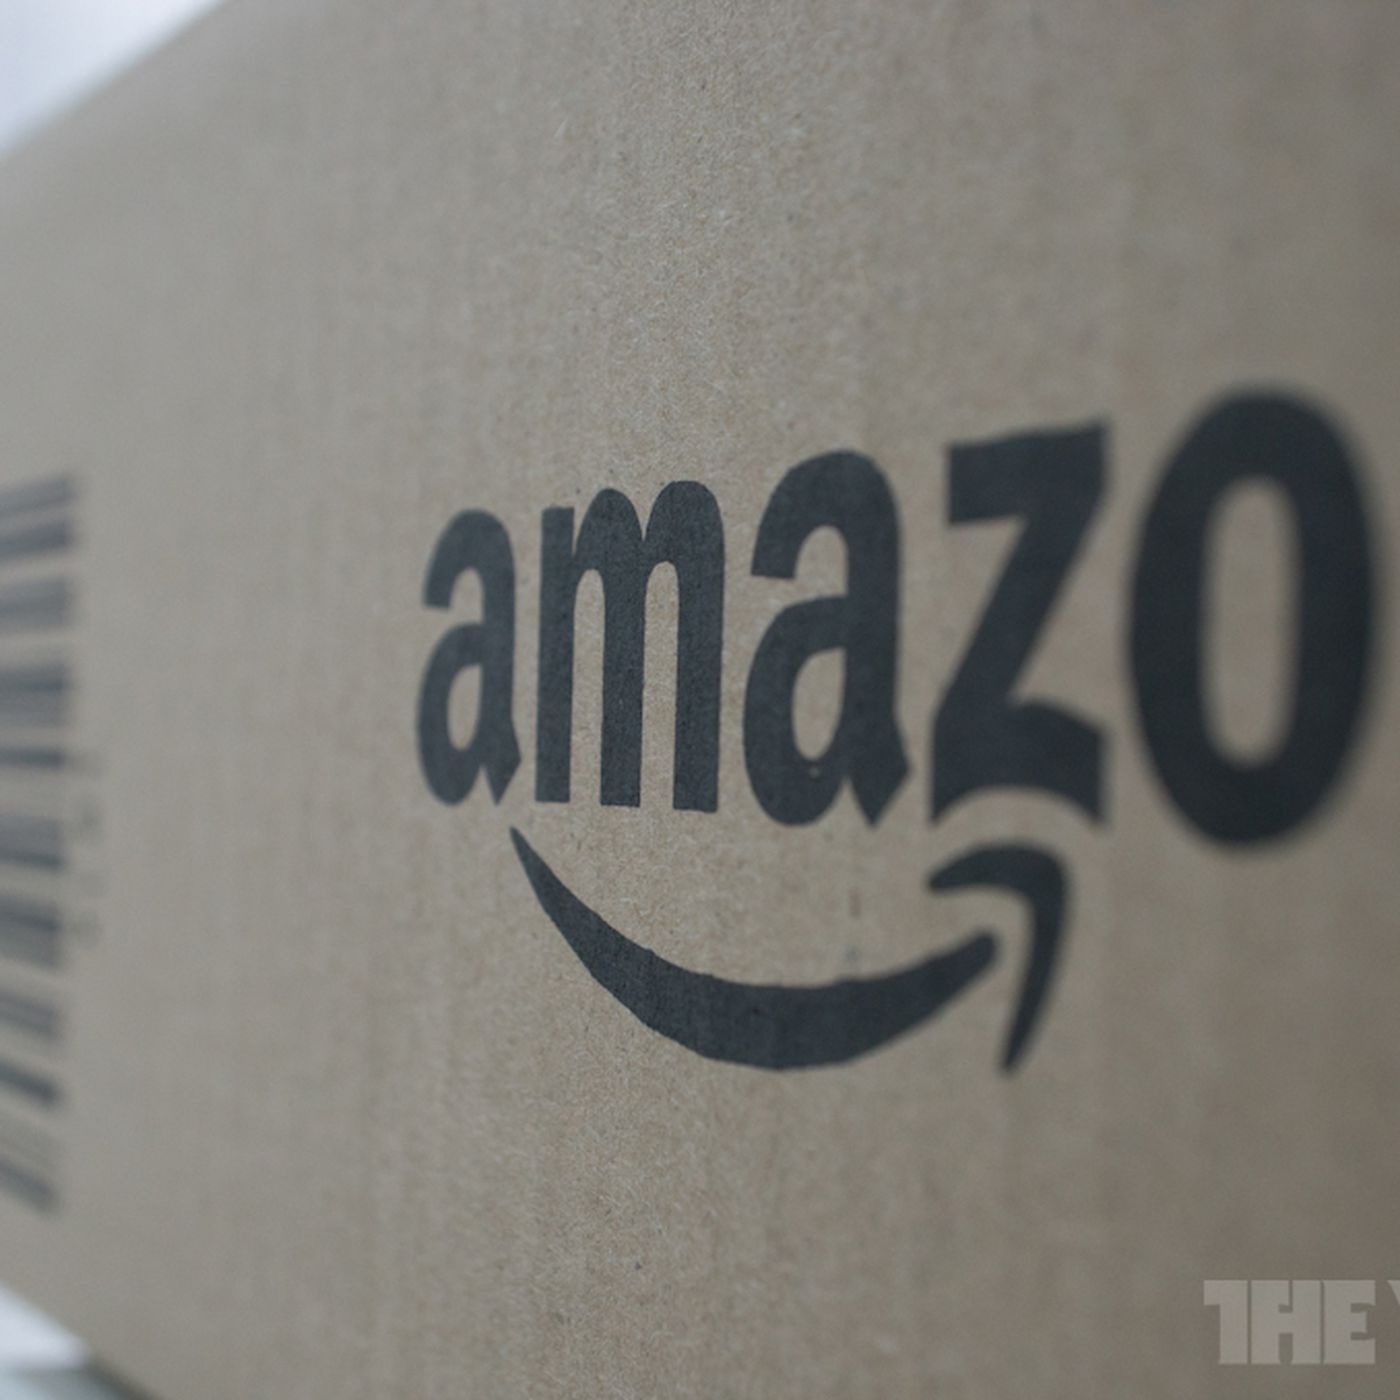 Amazon's new Family Library feature lets you share purchases as a